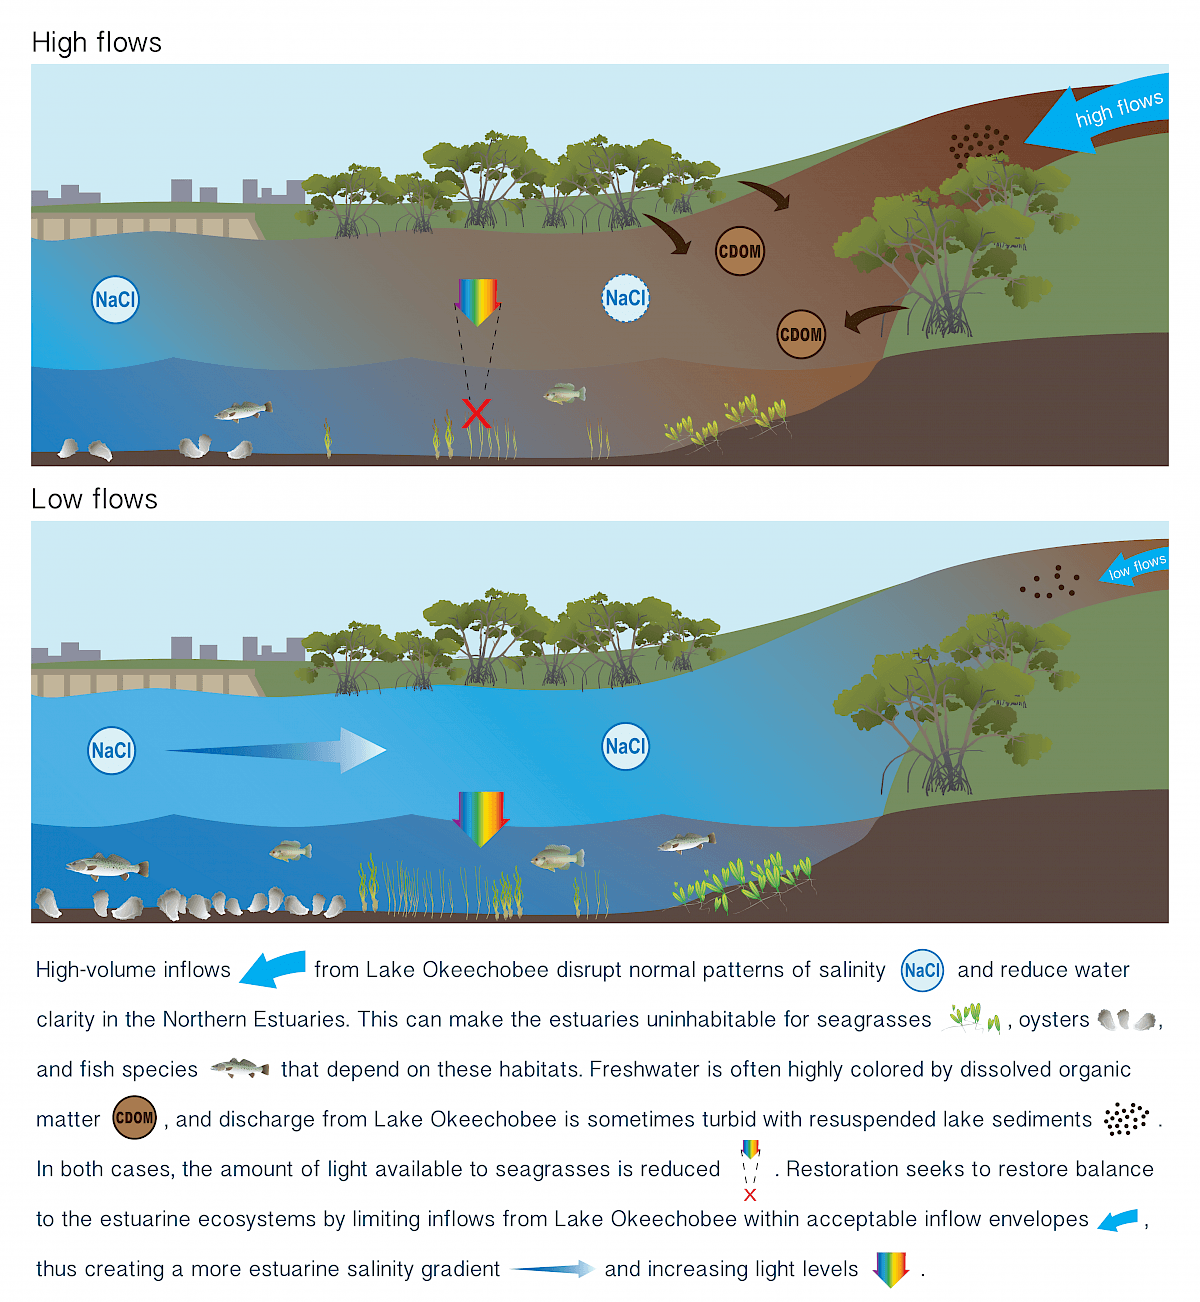 Graphic showing the high flow and low flow information. High-volume inflows from Lake Okeechobee disrupt the normal patterns of salinity and reduce water clarity in the Northern Estuaries. This can make the estuaries uninhabitable for seagrasses, oysters, and fish species that depend on these habitats. Freshwater is often highly colored by dissolved organic matter and discharge from Lake Okeechobee is sometimes turbid with resuspended lake sediments. In both cases, the amount of light available to seagrasses is reduced. Restoration seeks to restore balance to the ecosystem by limiting inflows from Lake Okeechobee with acceptable inflow envelopes, thus creating a more estuarine salinity gradient and increasing light levels.